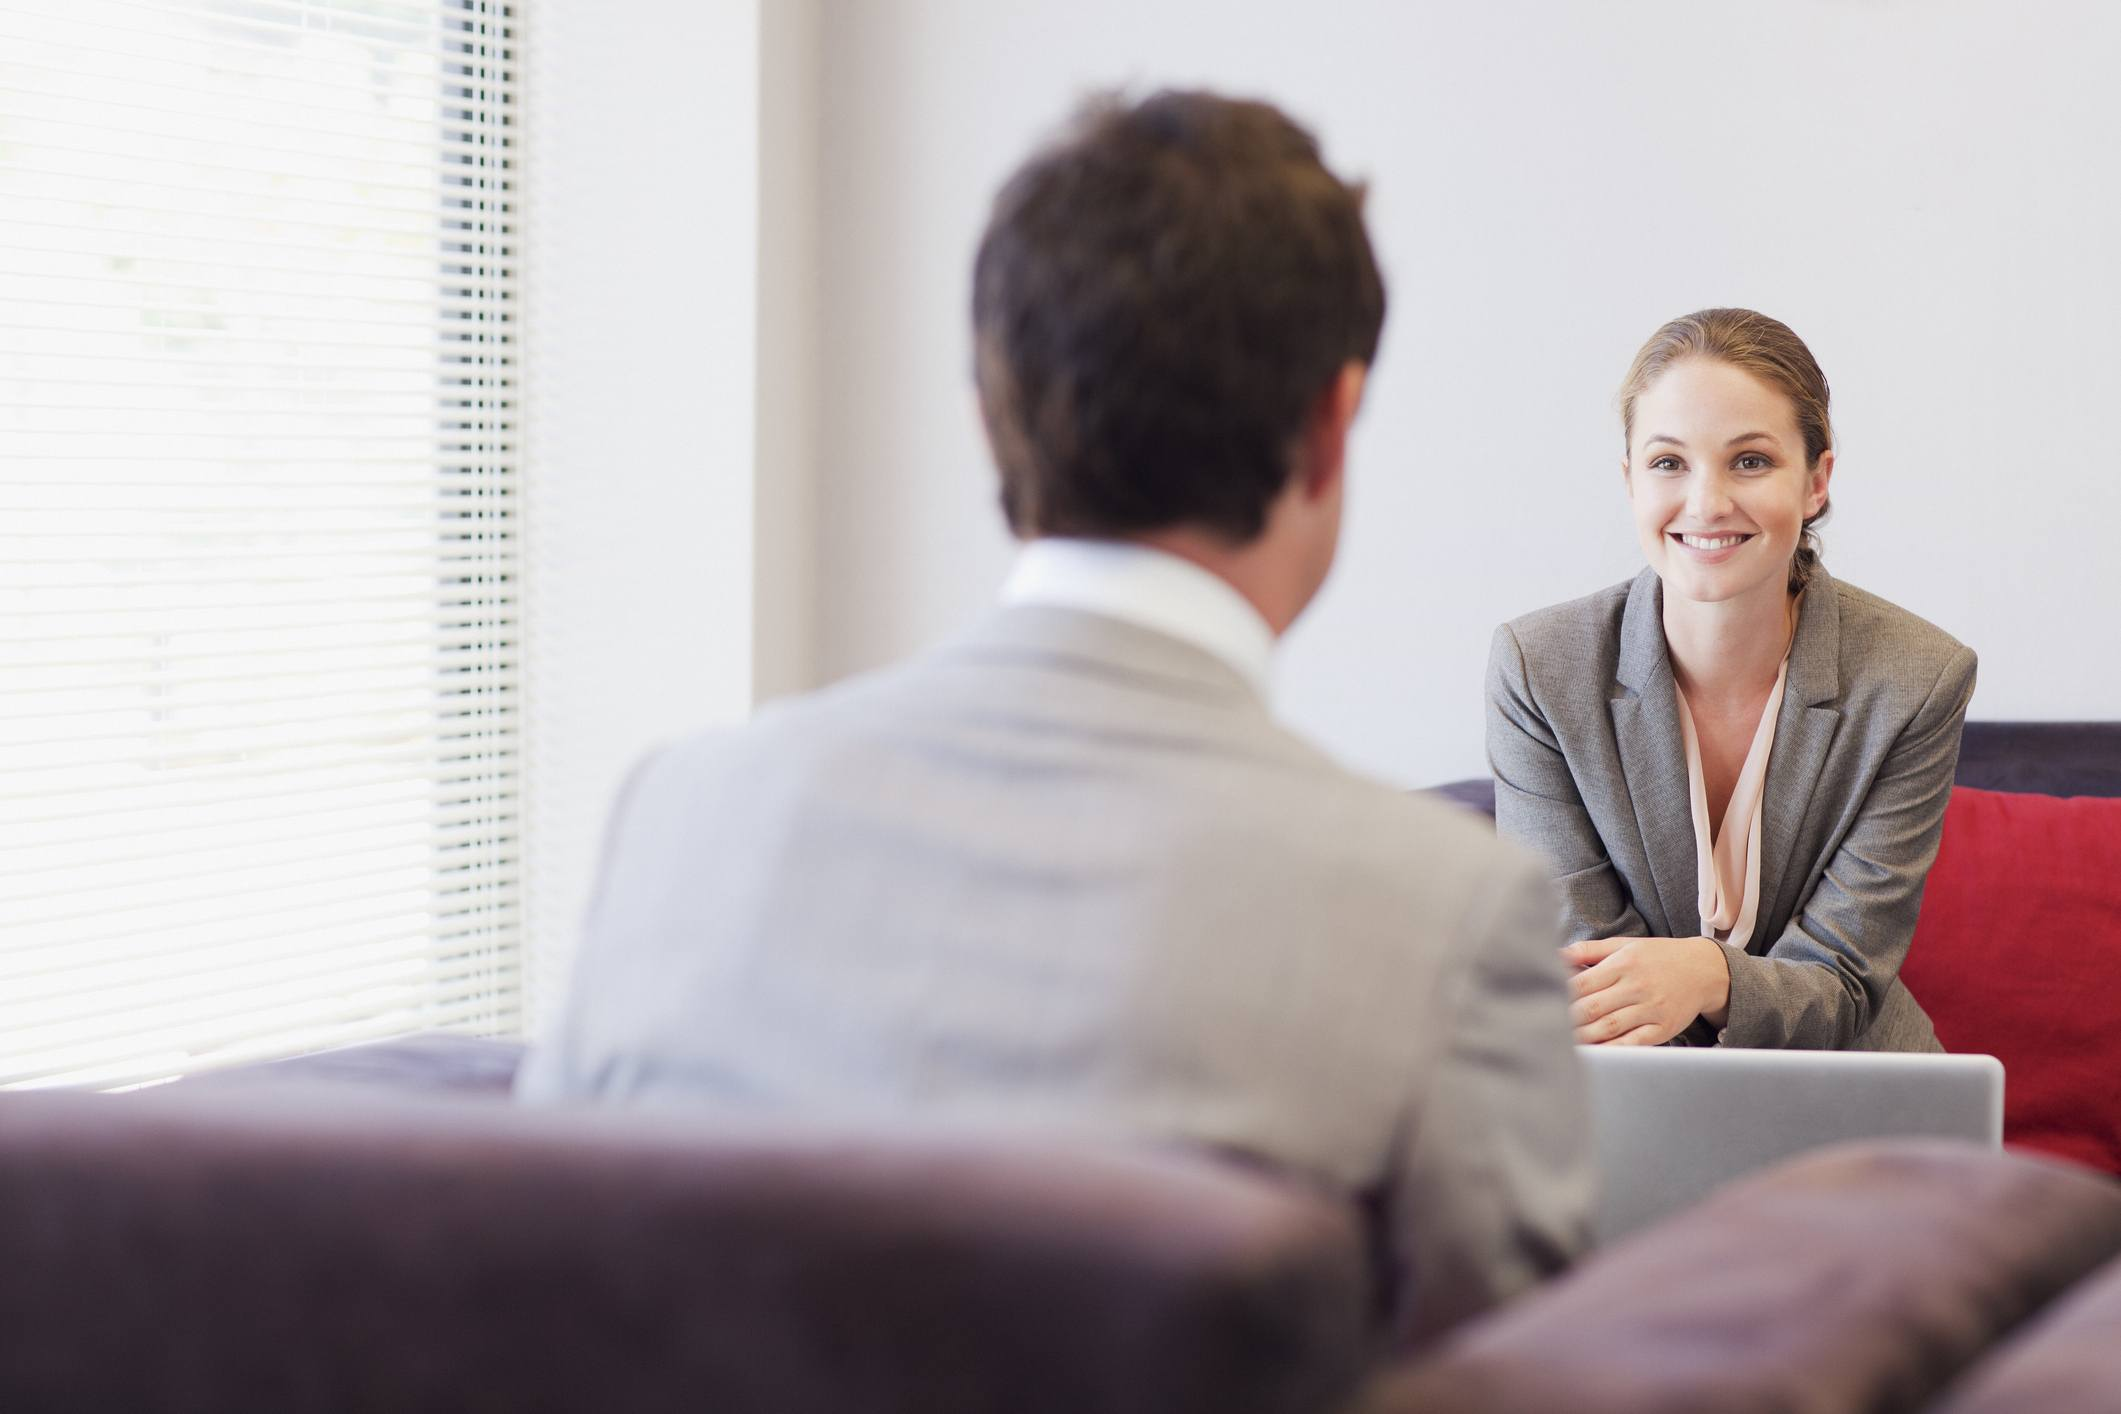 Job Interview Gone Wrong: The Telltale Signs You Probably Didn't Get